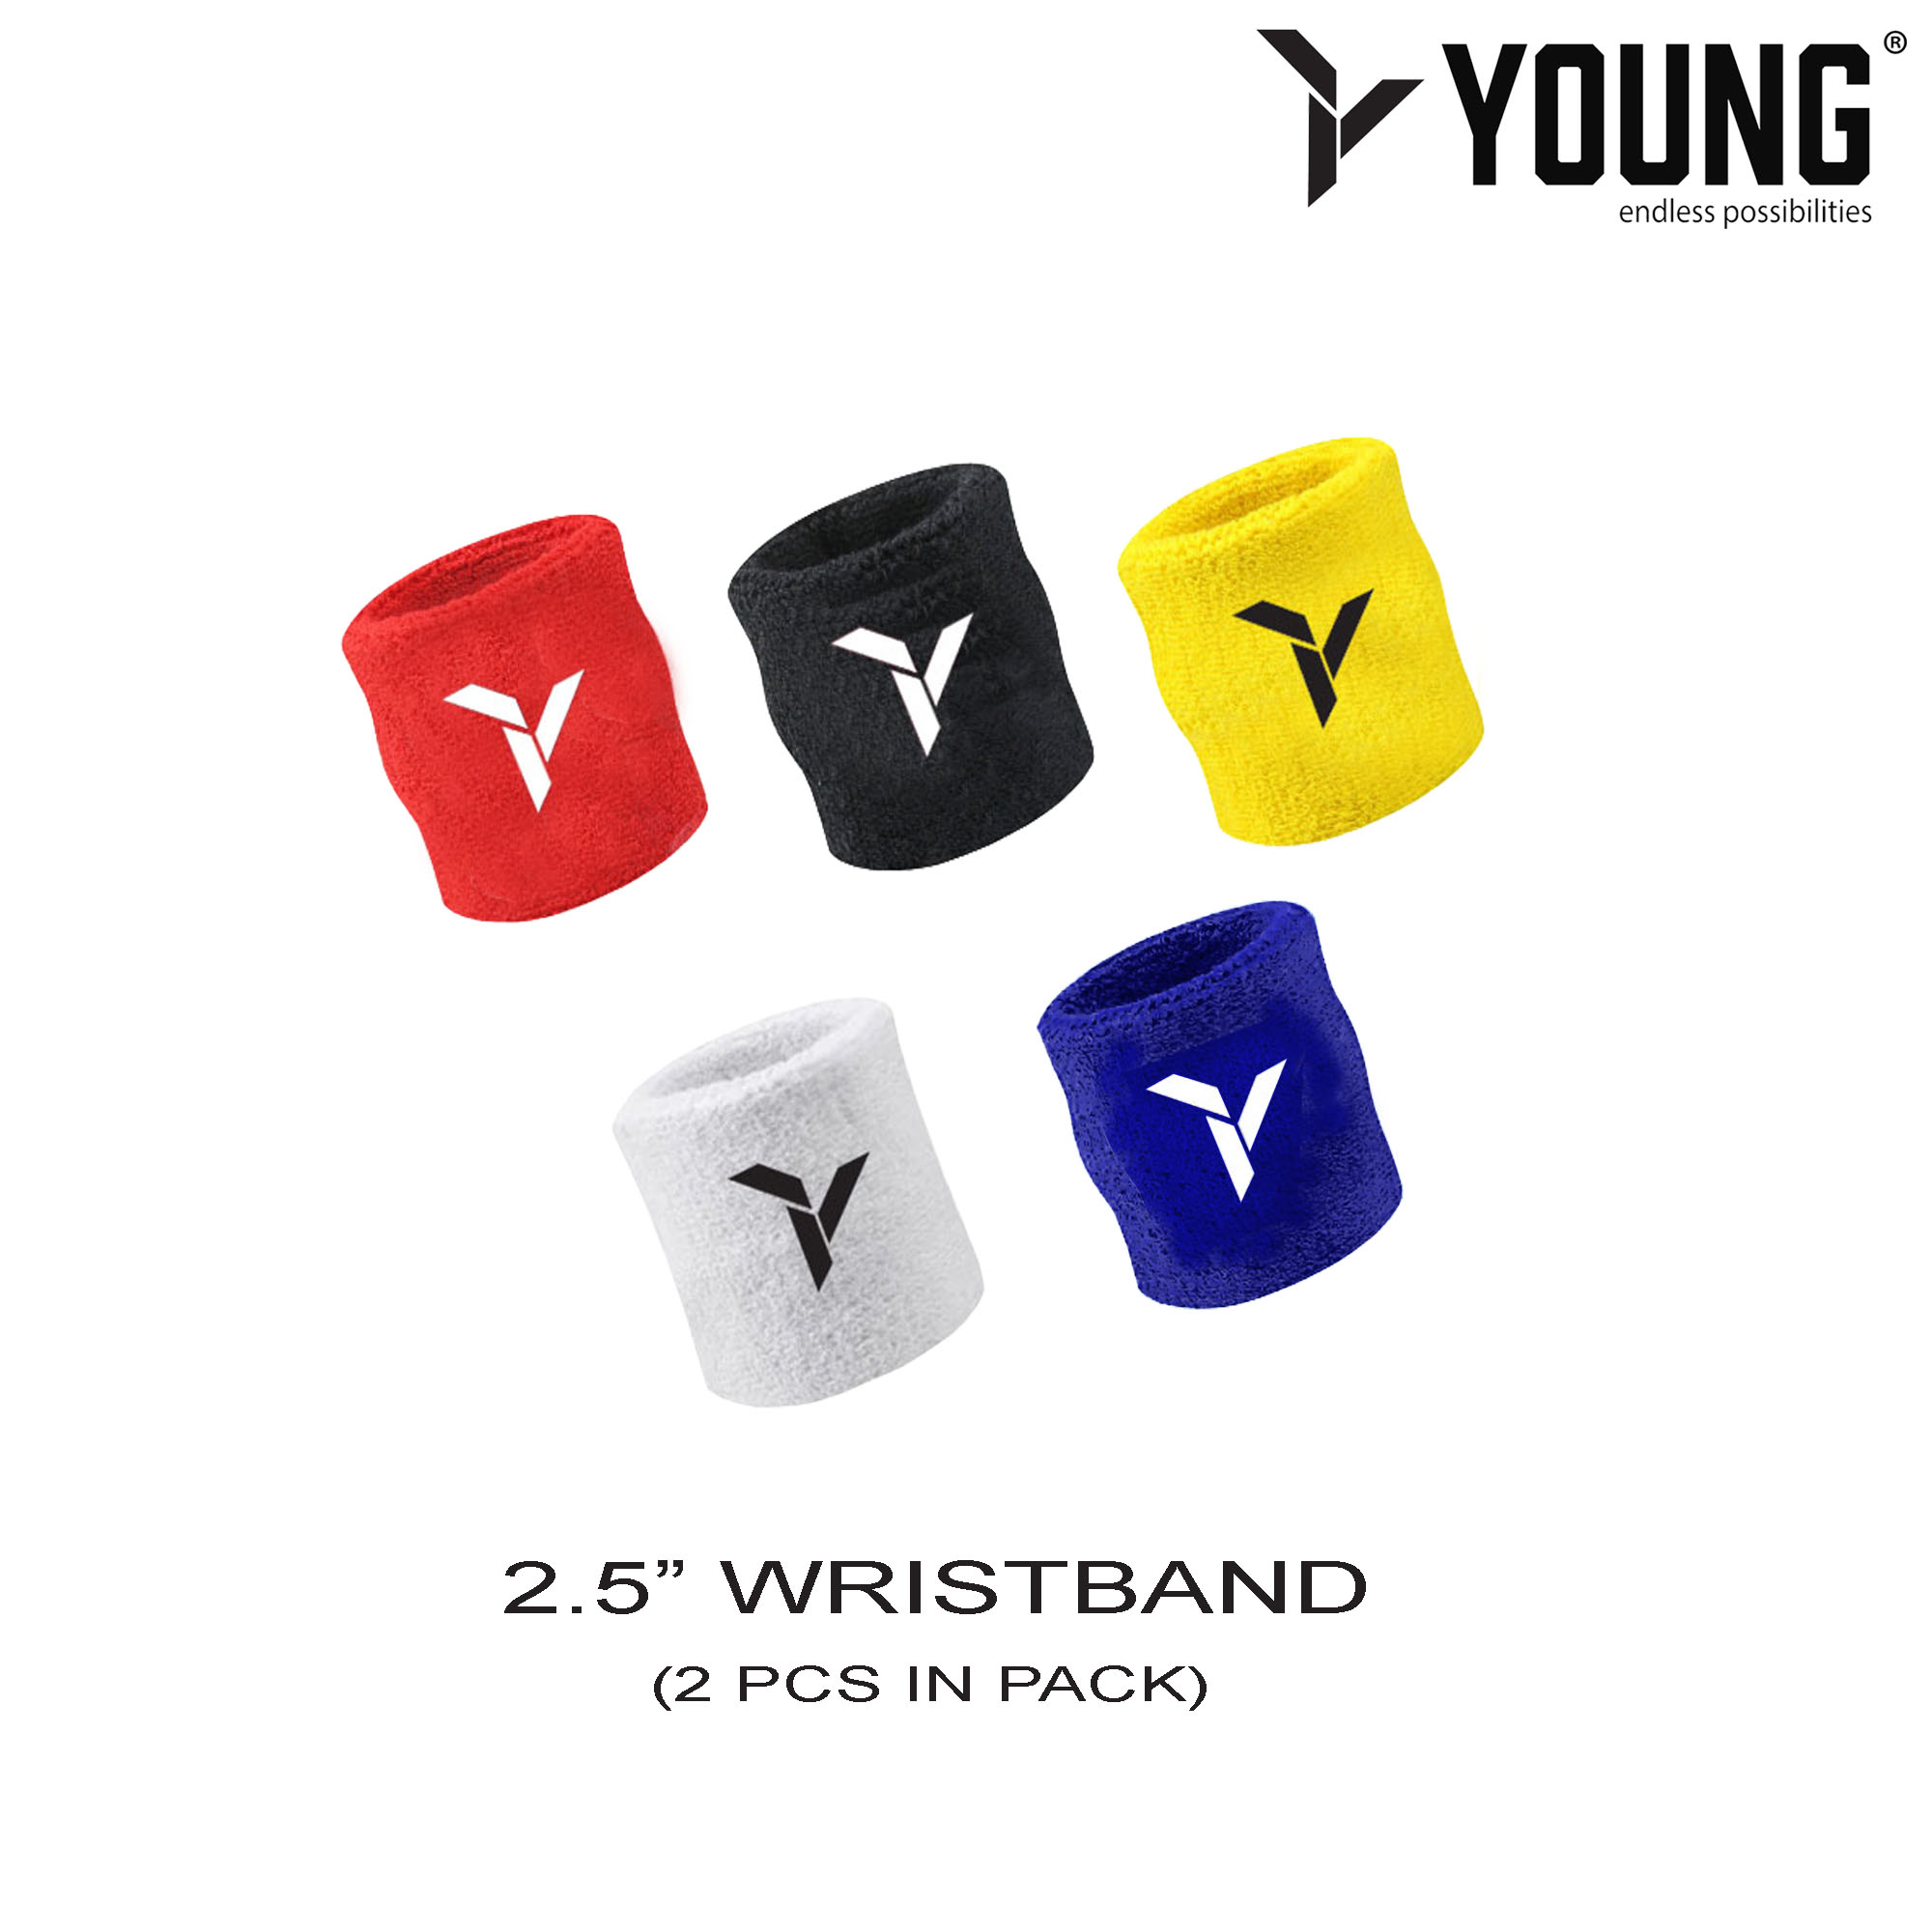 YOUNG Wristbands 2pcs